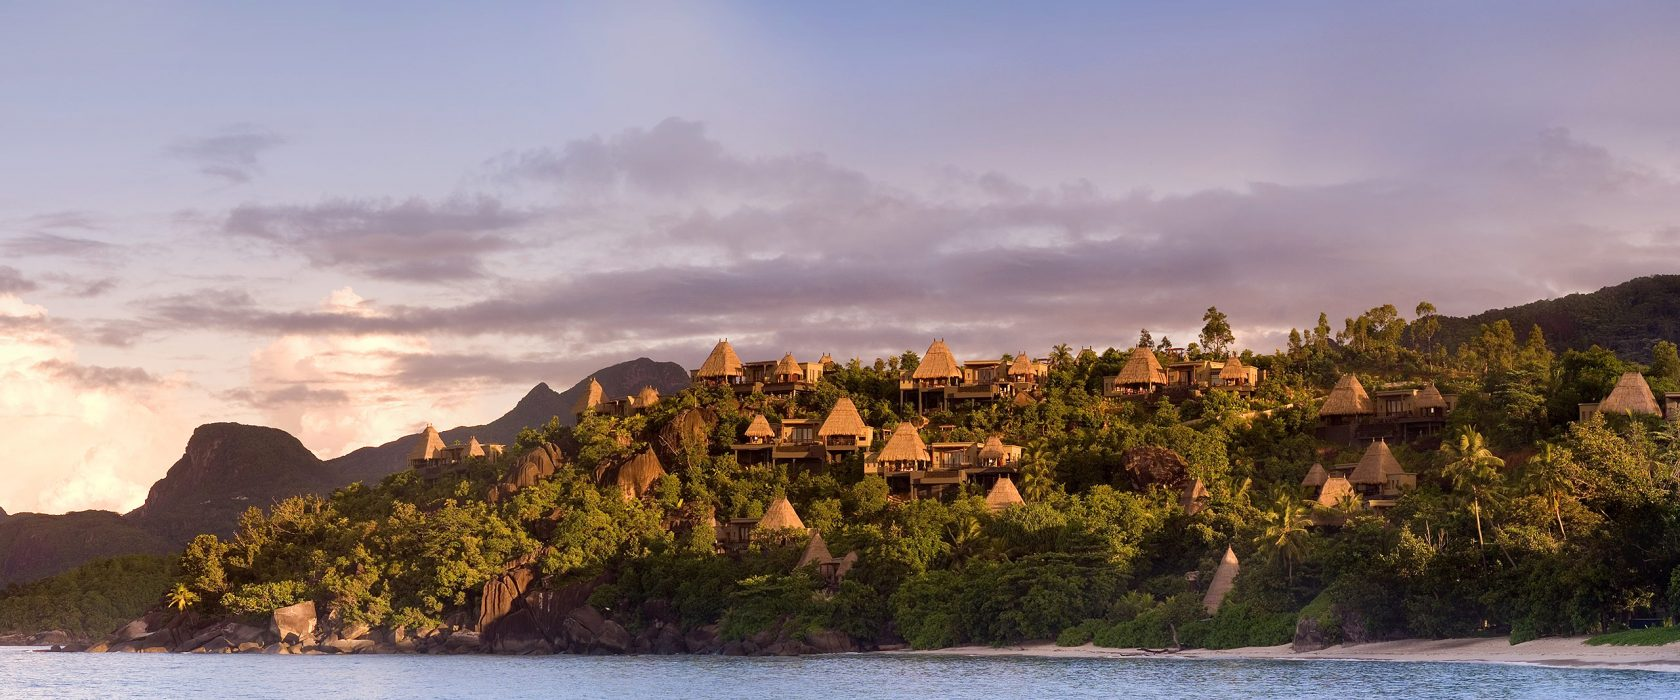 MAIA Luxury Resort & Spa | Seychelles Resort